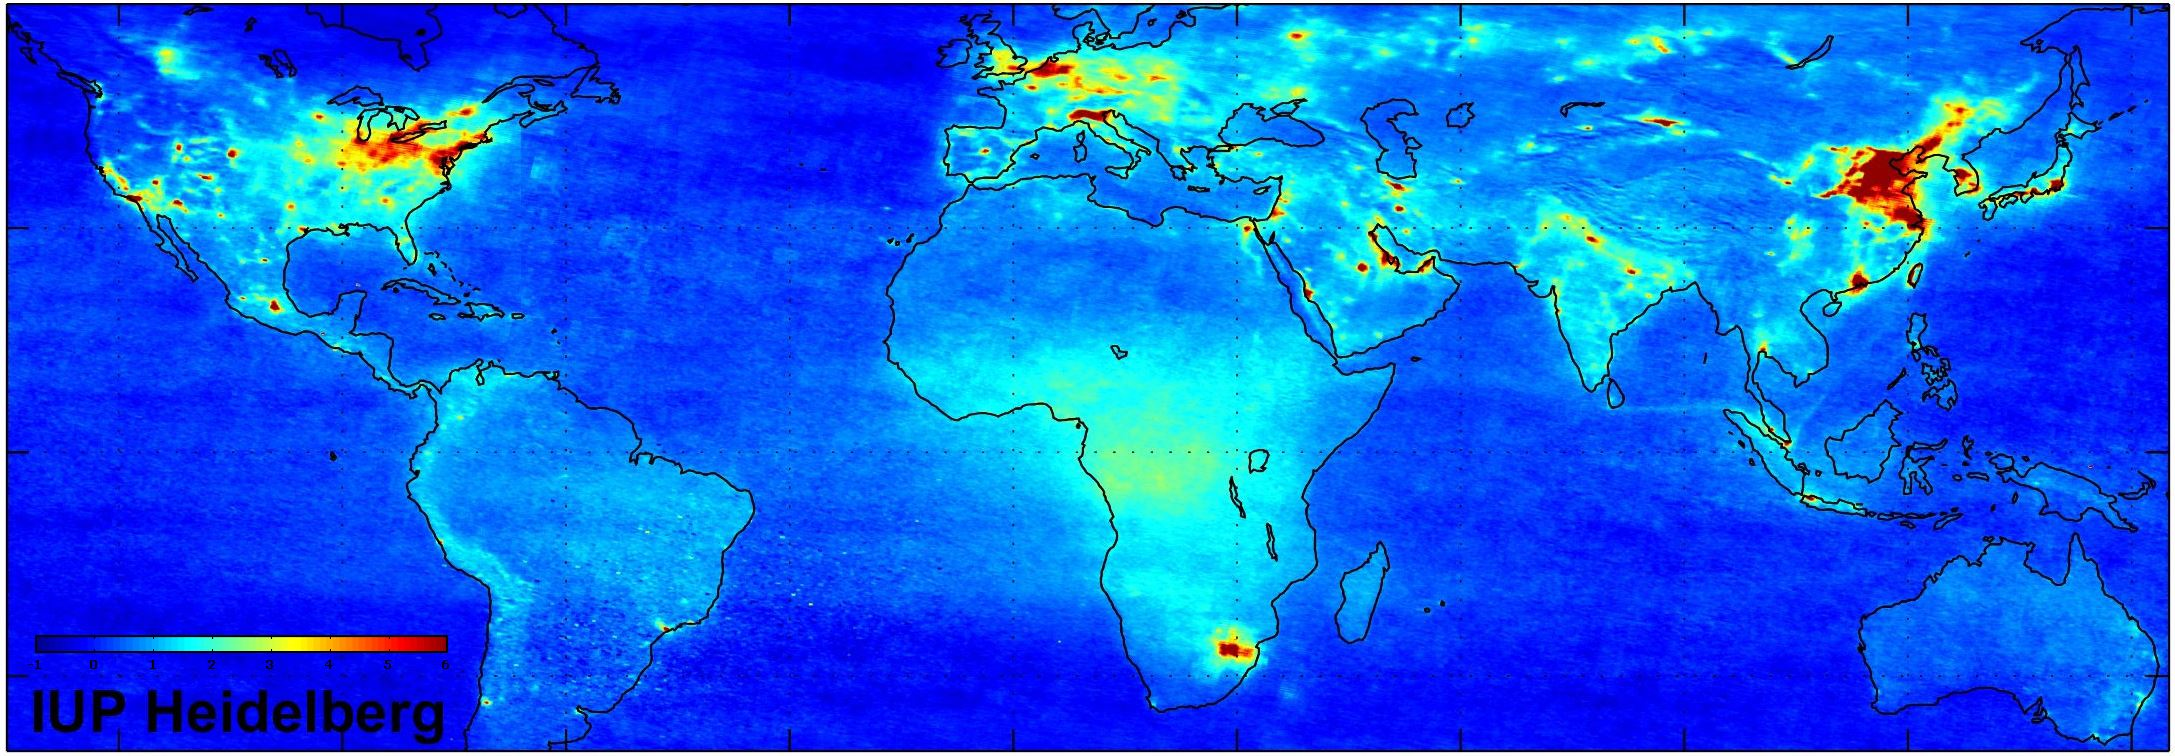 Global_air_pollution_map_produced_by_Envisat_s_SCIAMACHY